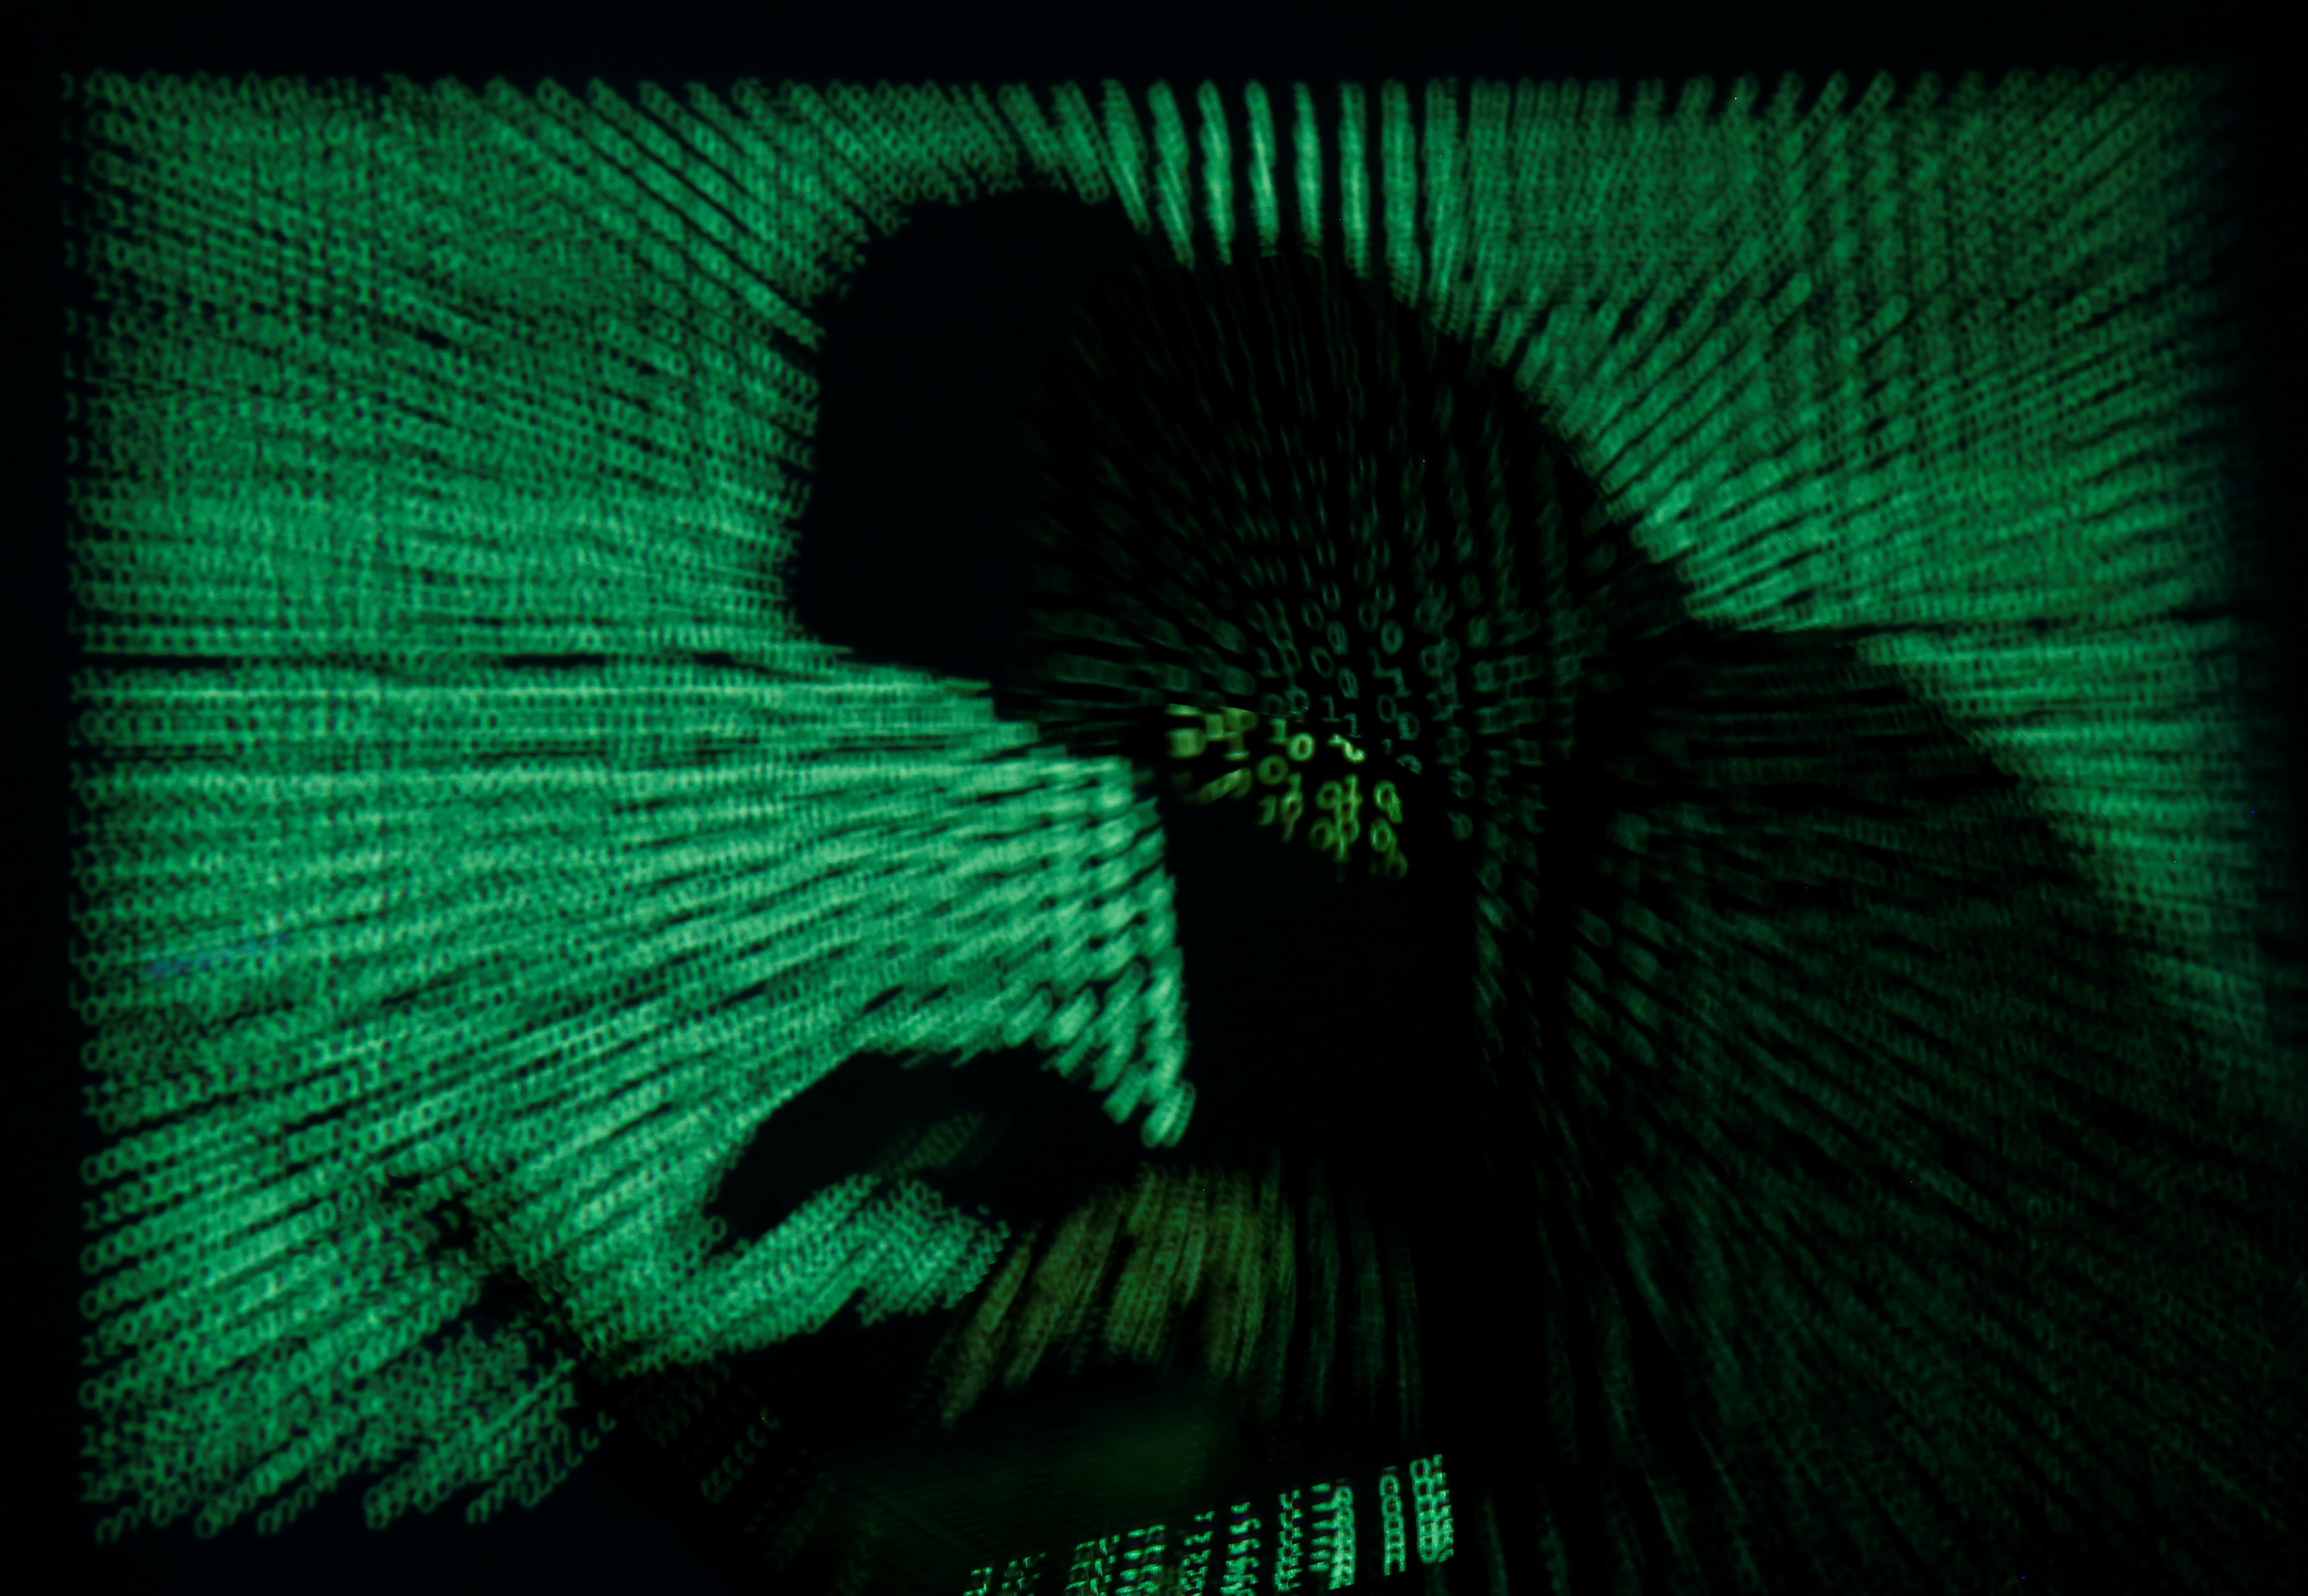 Cyber Attack Group Threatens to Release More Malicious Code